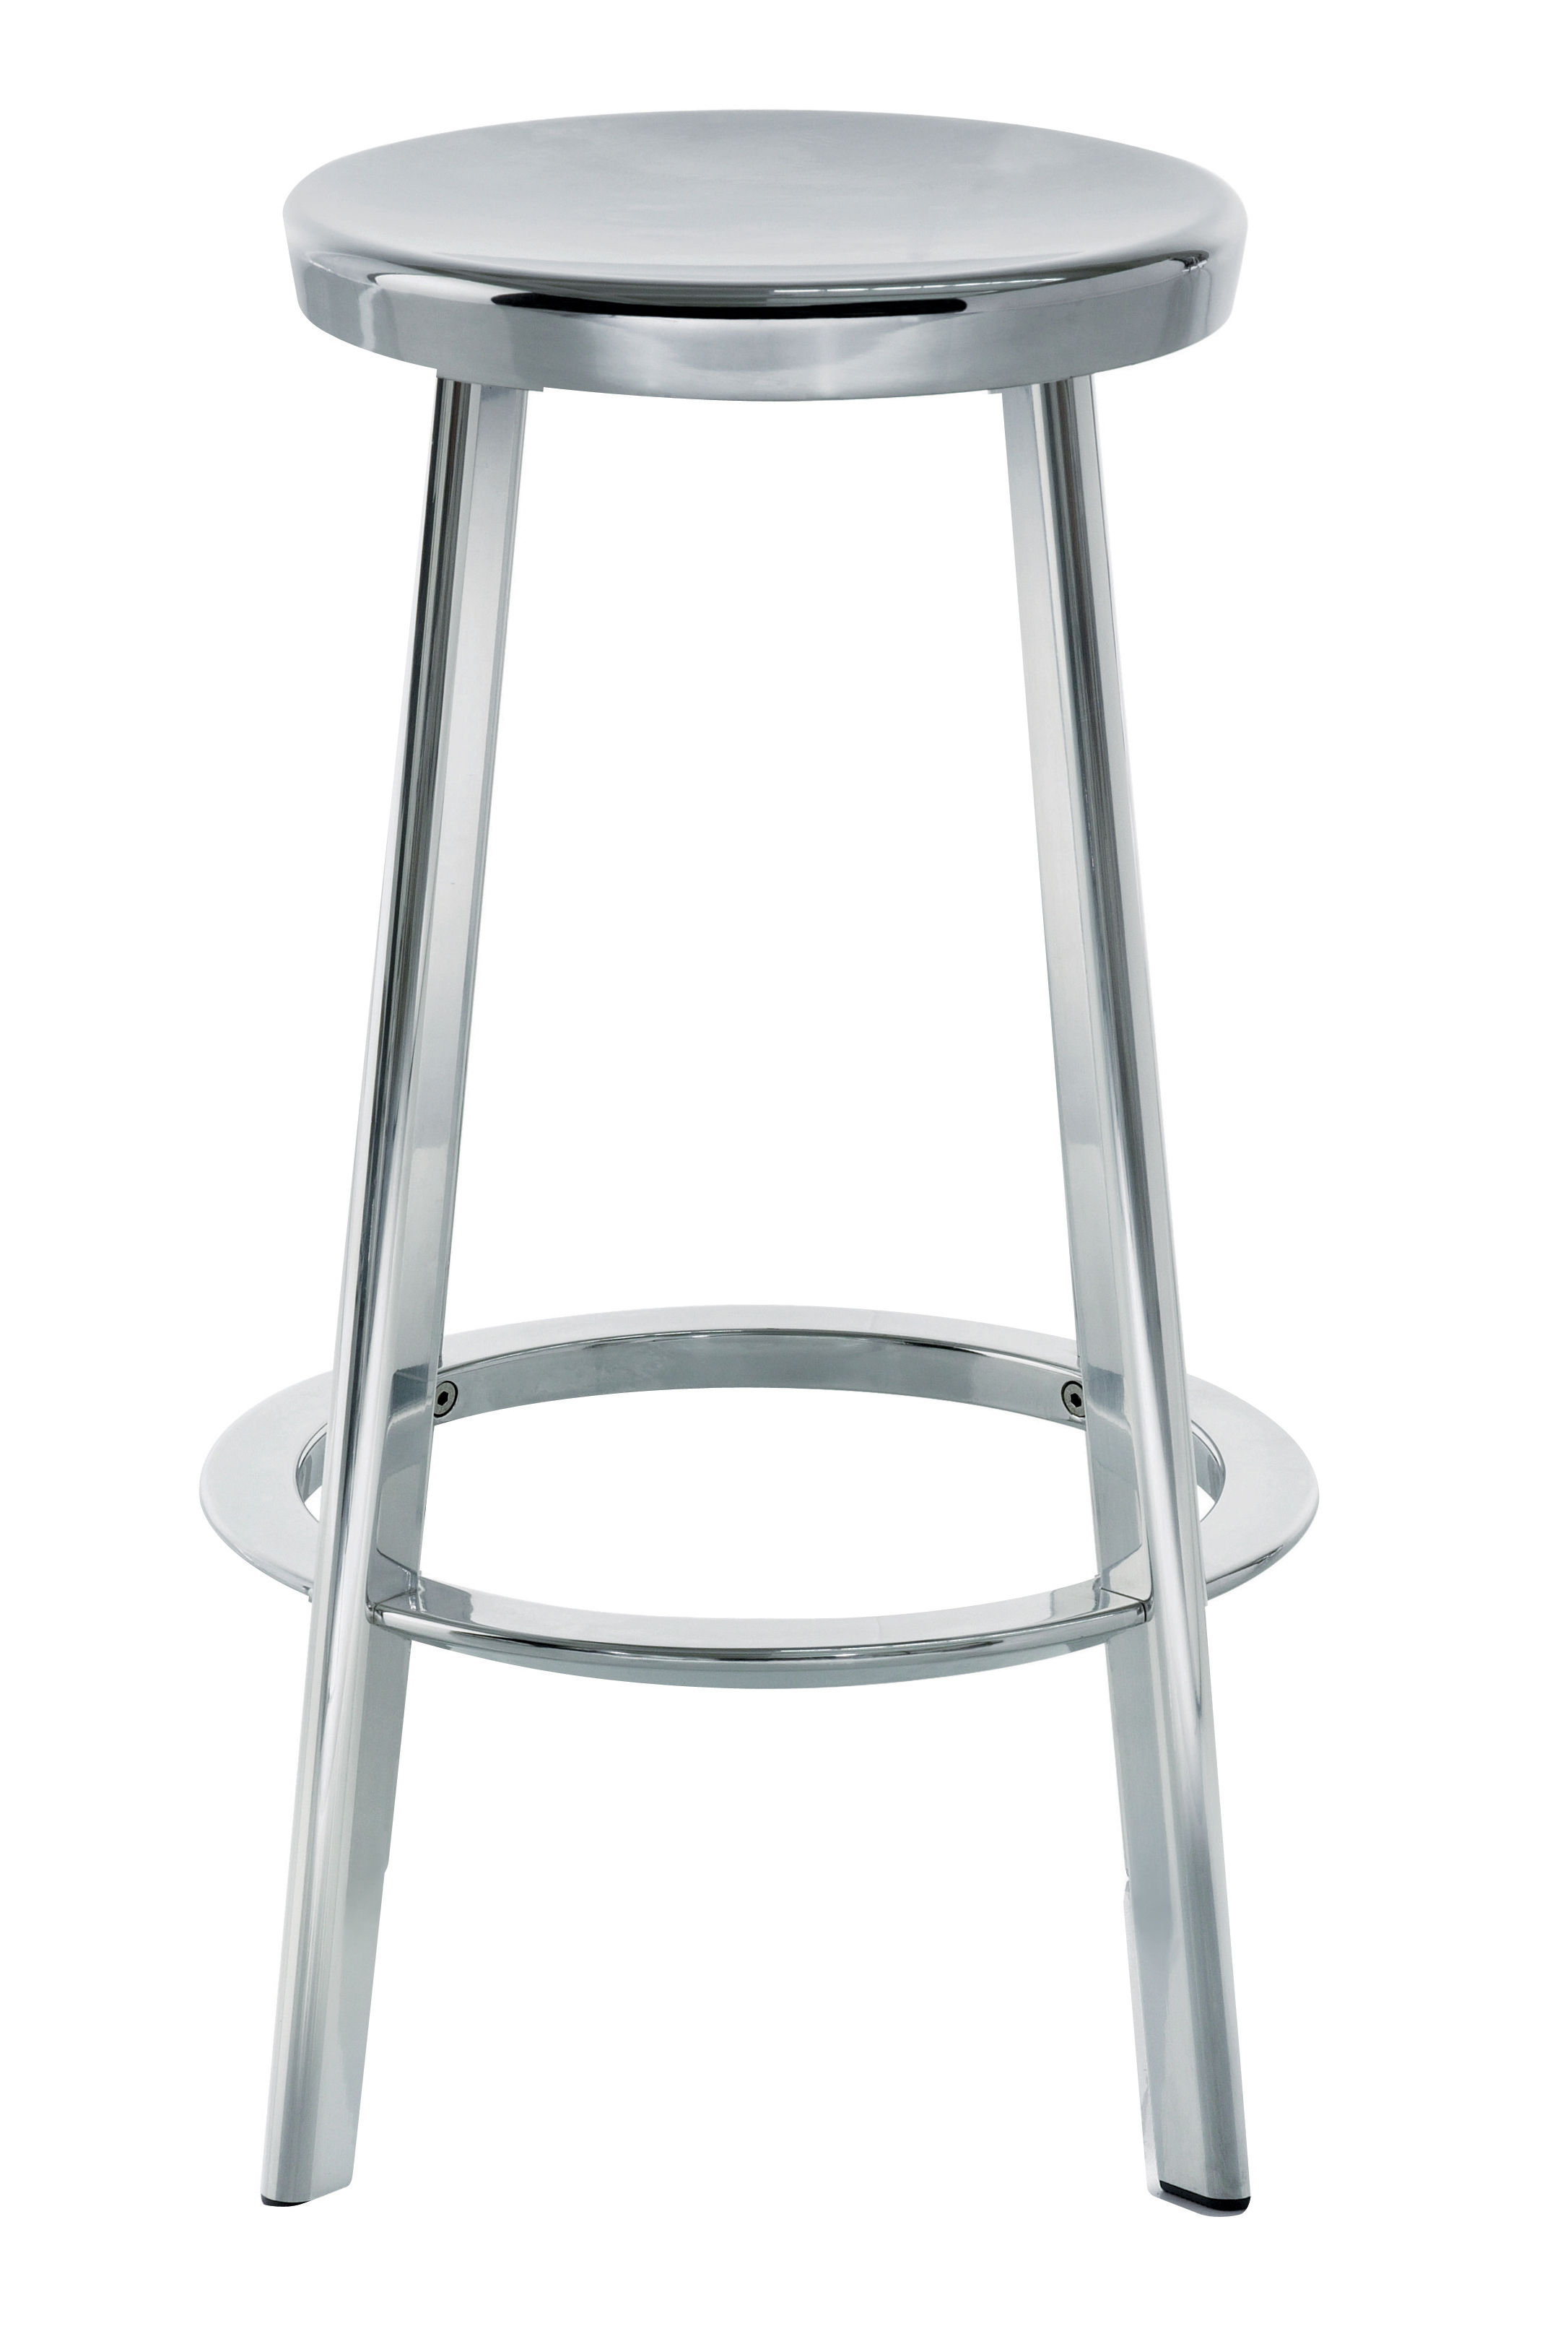 tabouret de bar d j vu h 66 cm m tal aluminium magis. Black Bedroom Furniture Sets. Home Design Ideas